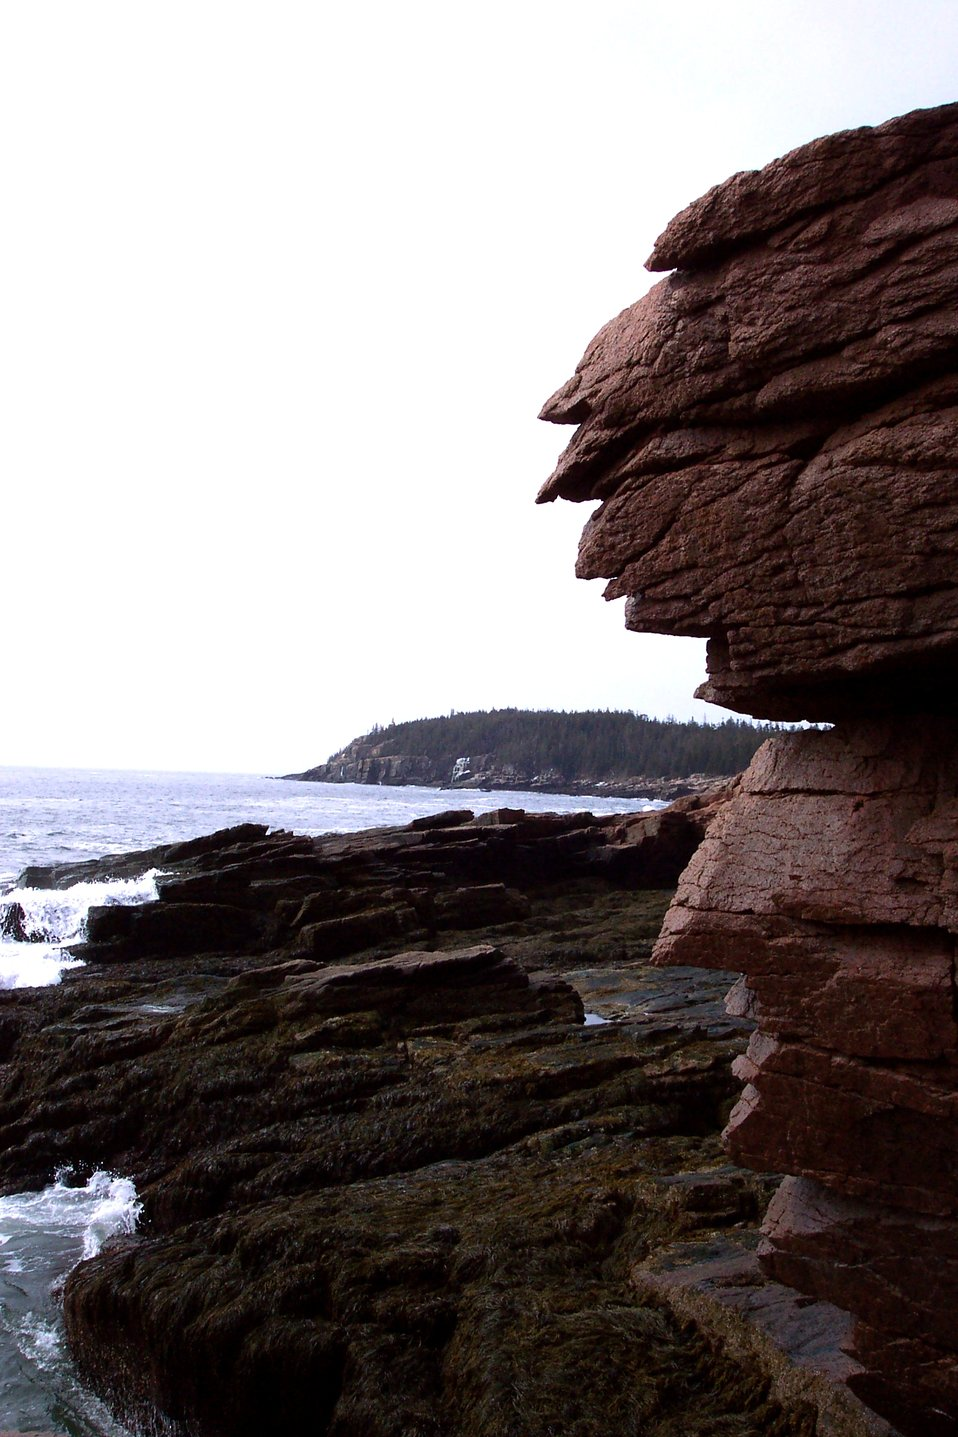 The view towards Otter Cliffs from Thunder Hole.